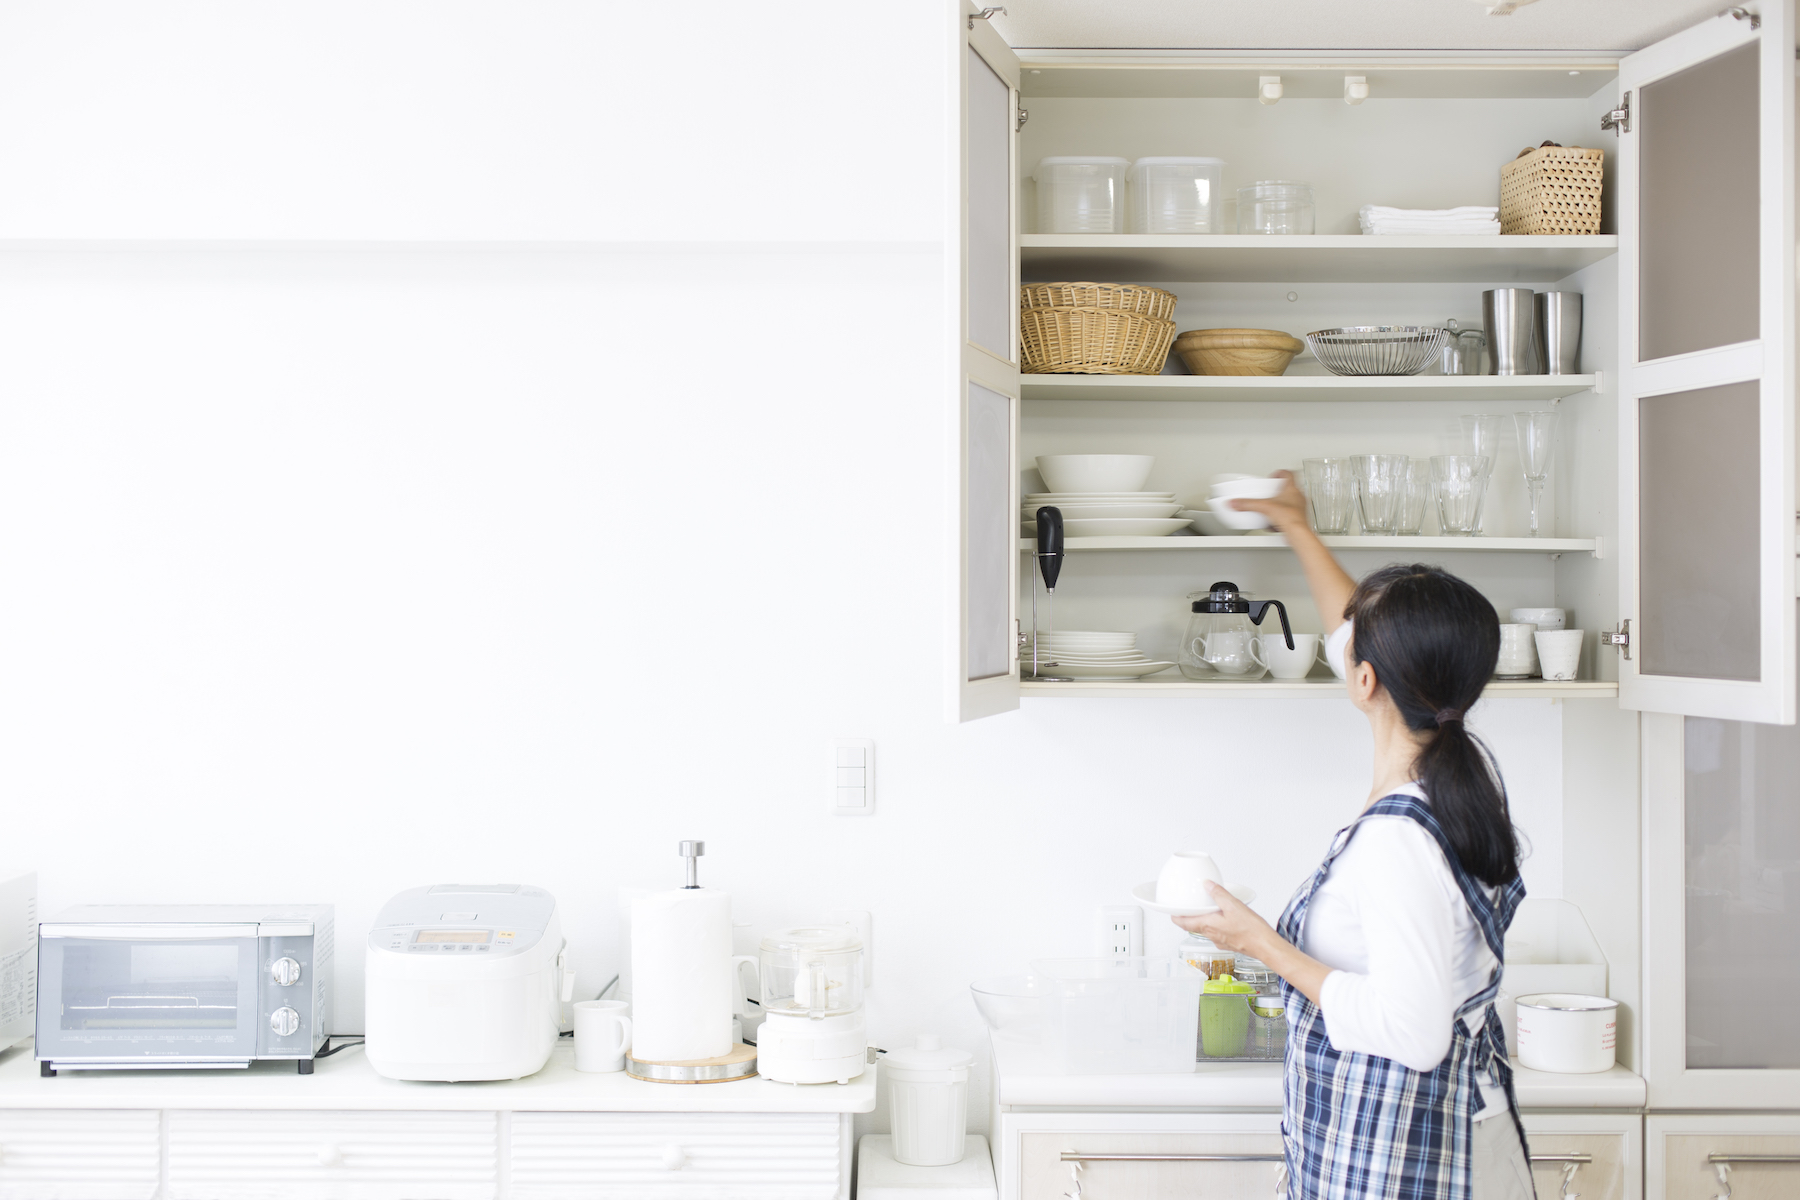 Clutter Stress Connection Research, woman tidying up in kitchen